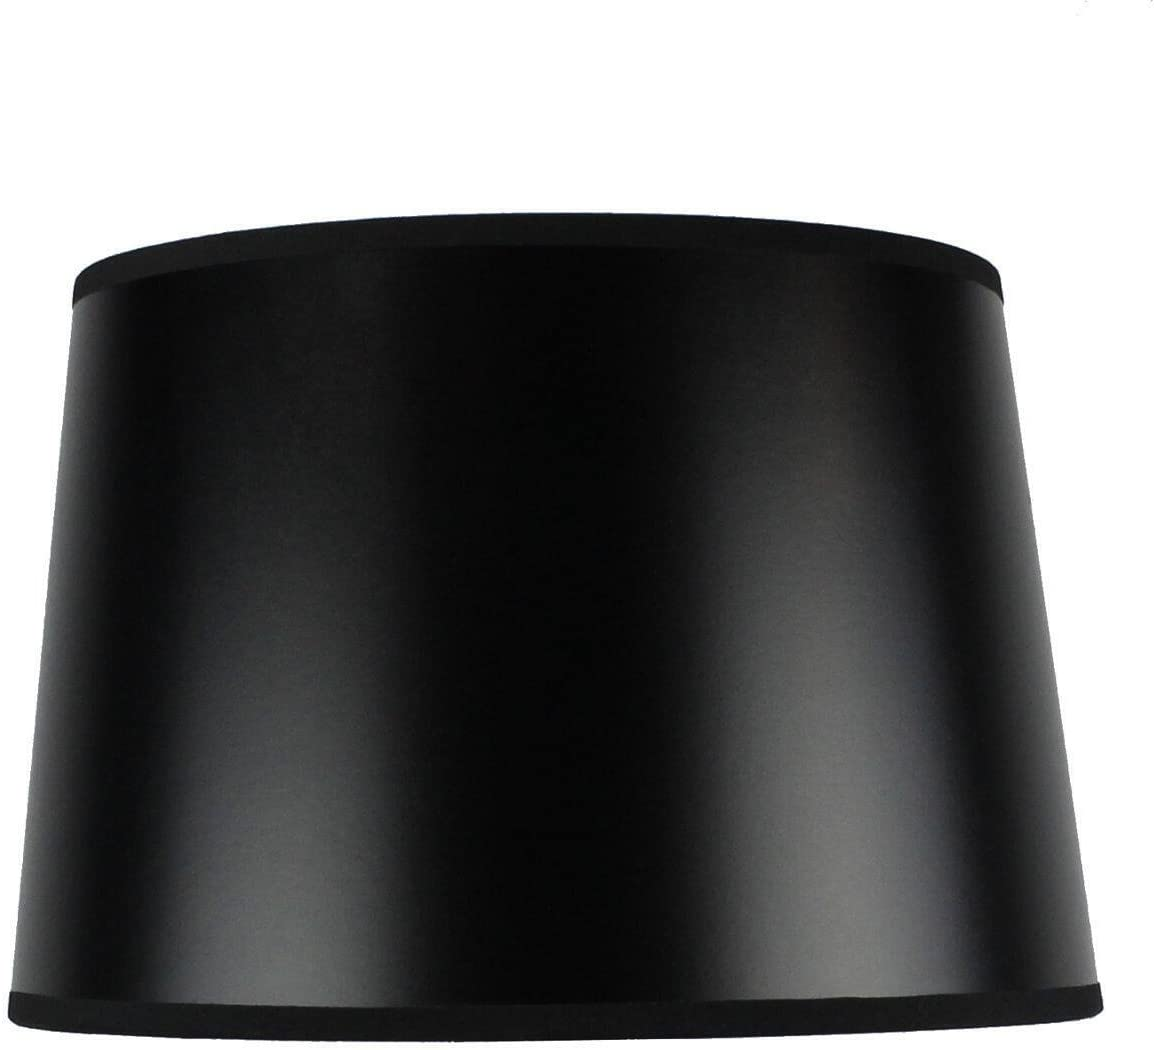 10x12x08 Hardback Shallow Drum Lampshade Black Parchment with Brass Spider Fitter – Perfect for Table and Desk Lamps – Medium, Black